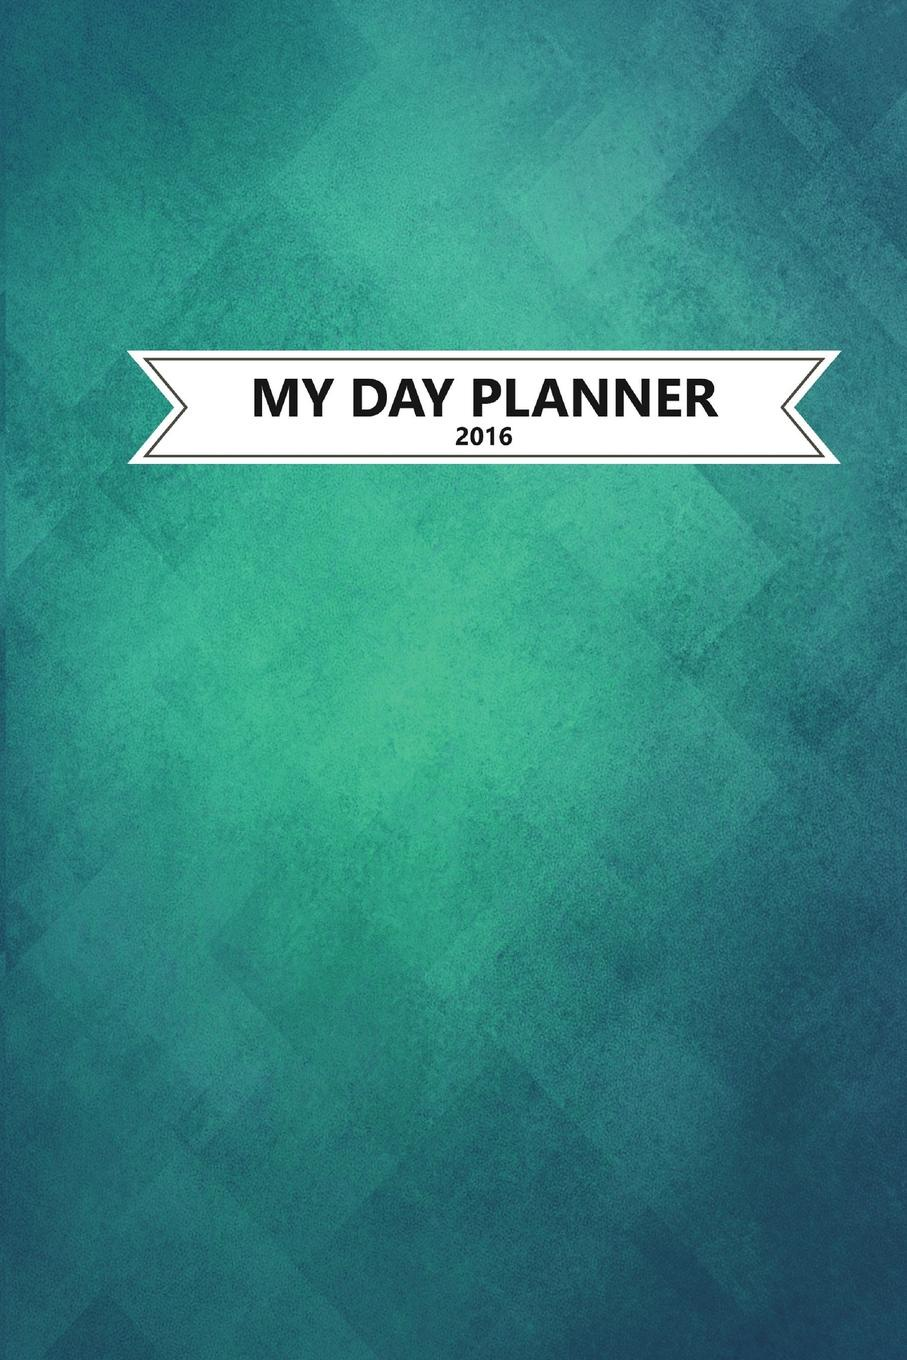 My Day Planner 2016 The Bloke Head Day Journals are a great addition those love...